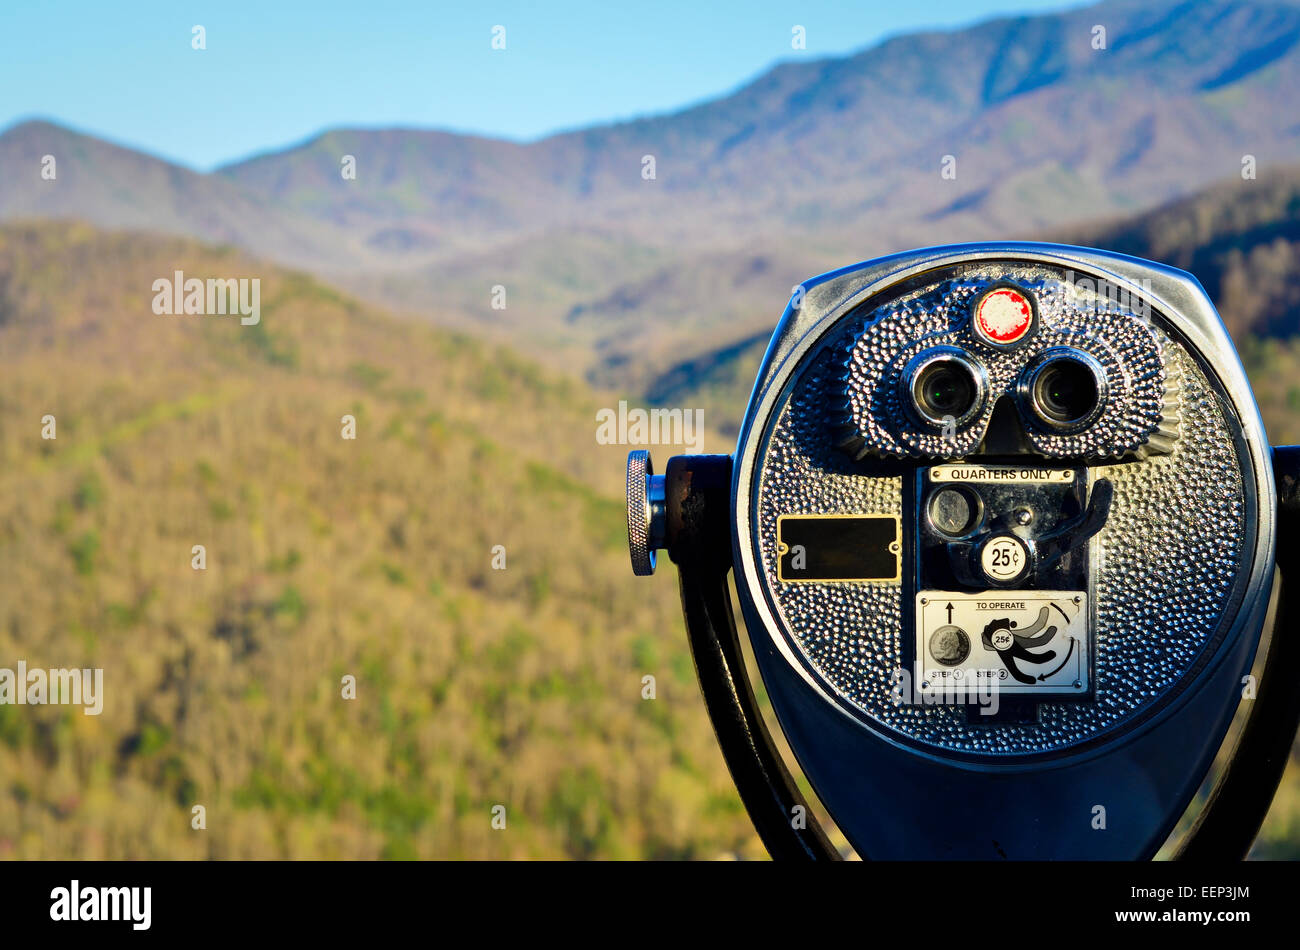 Coin binoculars with mountain view at a distance - Stock Image